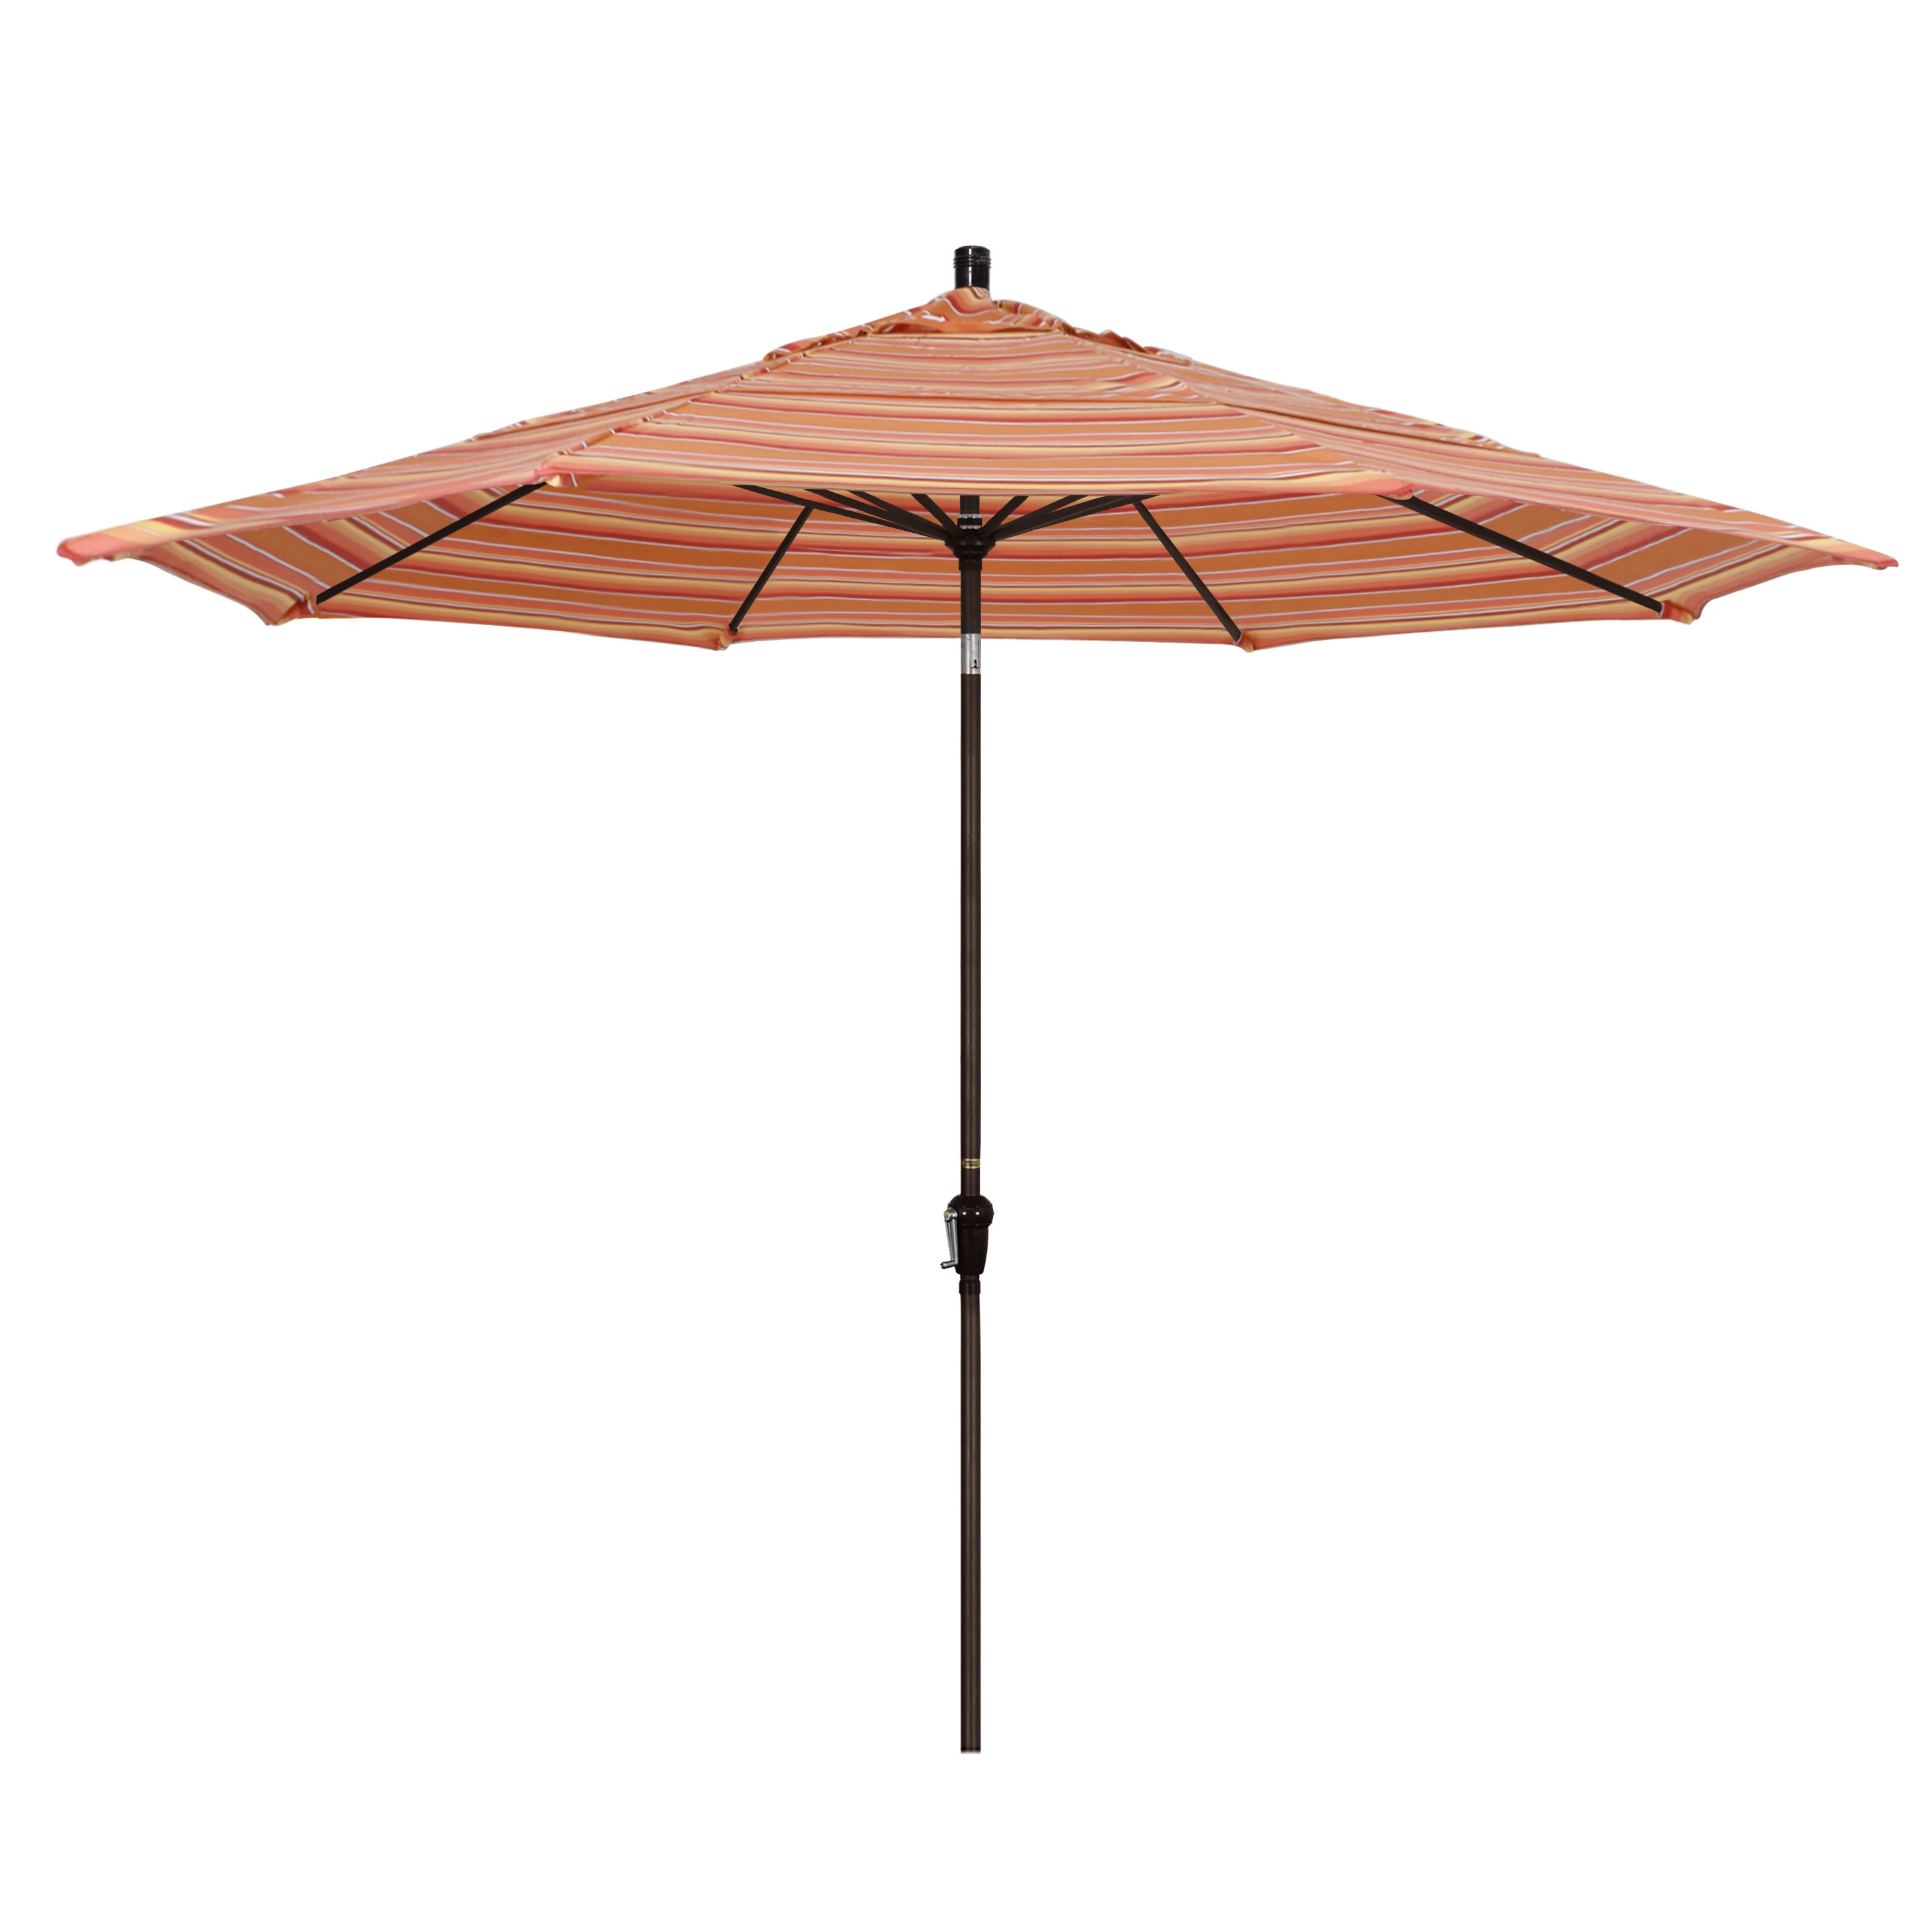 Mucci Madilyn Market Sunbrella Umbrellas Regarding Most Recent Mullaney 11' Market Sunbrella Umbrella (View 6 of 20)